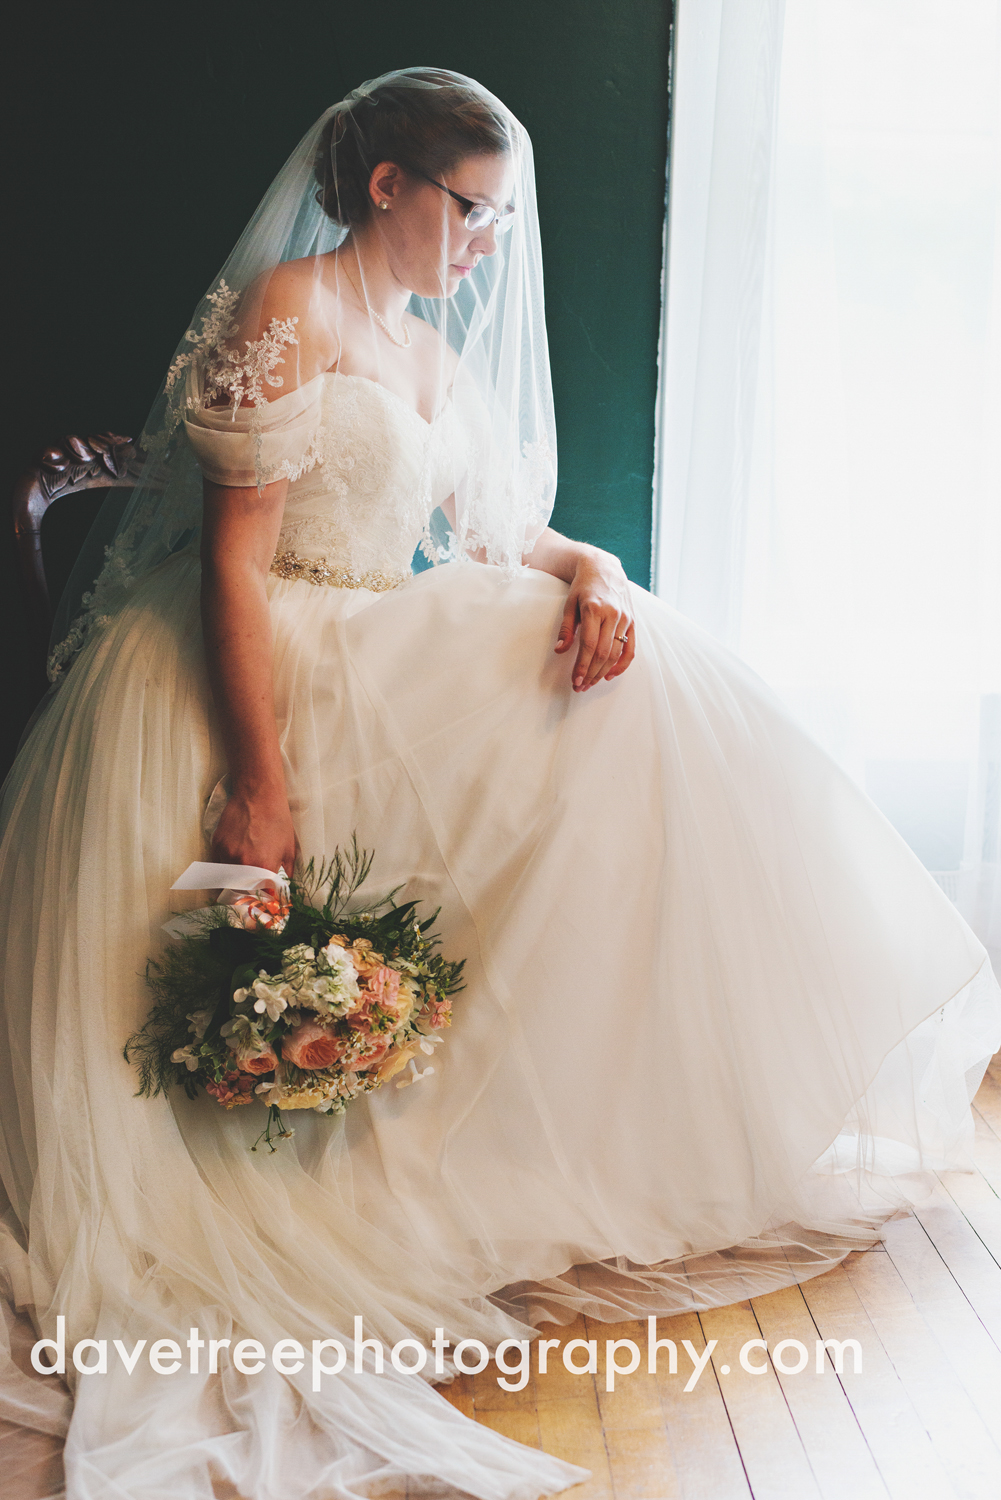 grand_haven_wedding_photographer_weaver_house_wedding_16.jpg